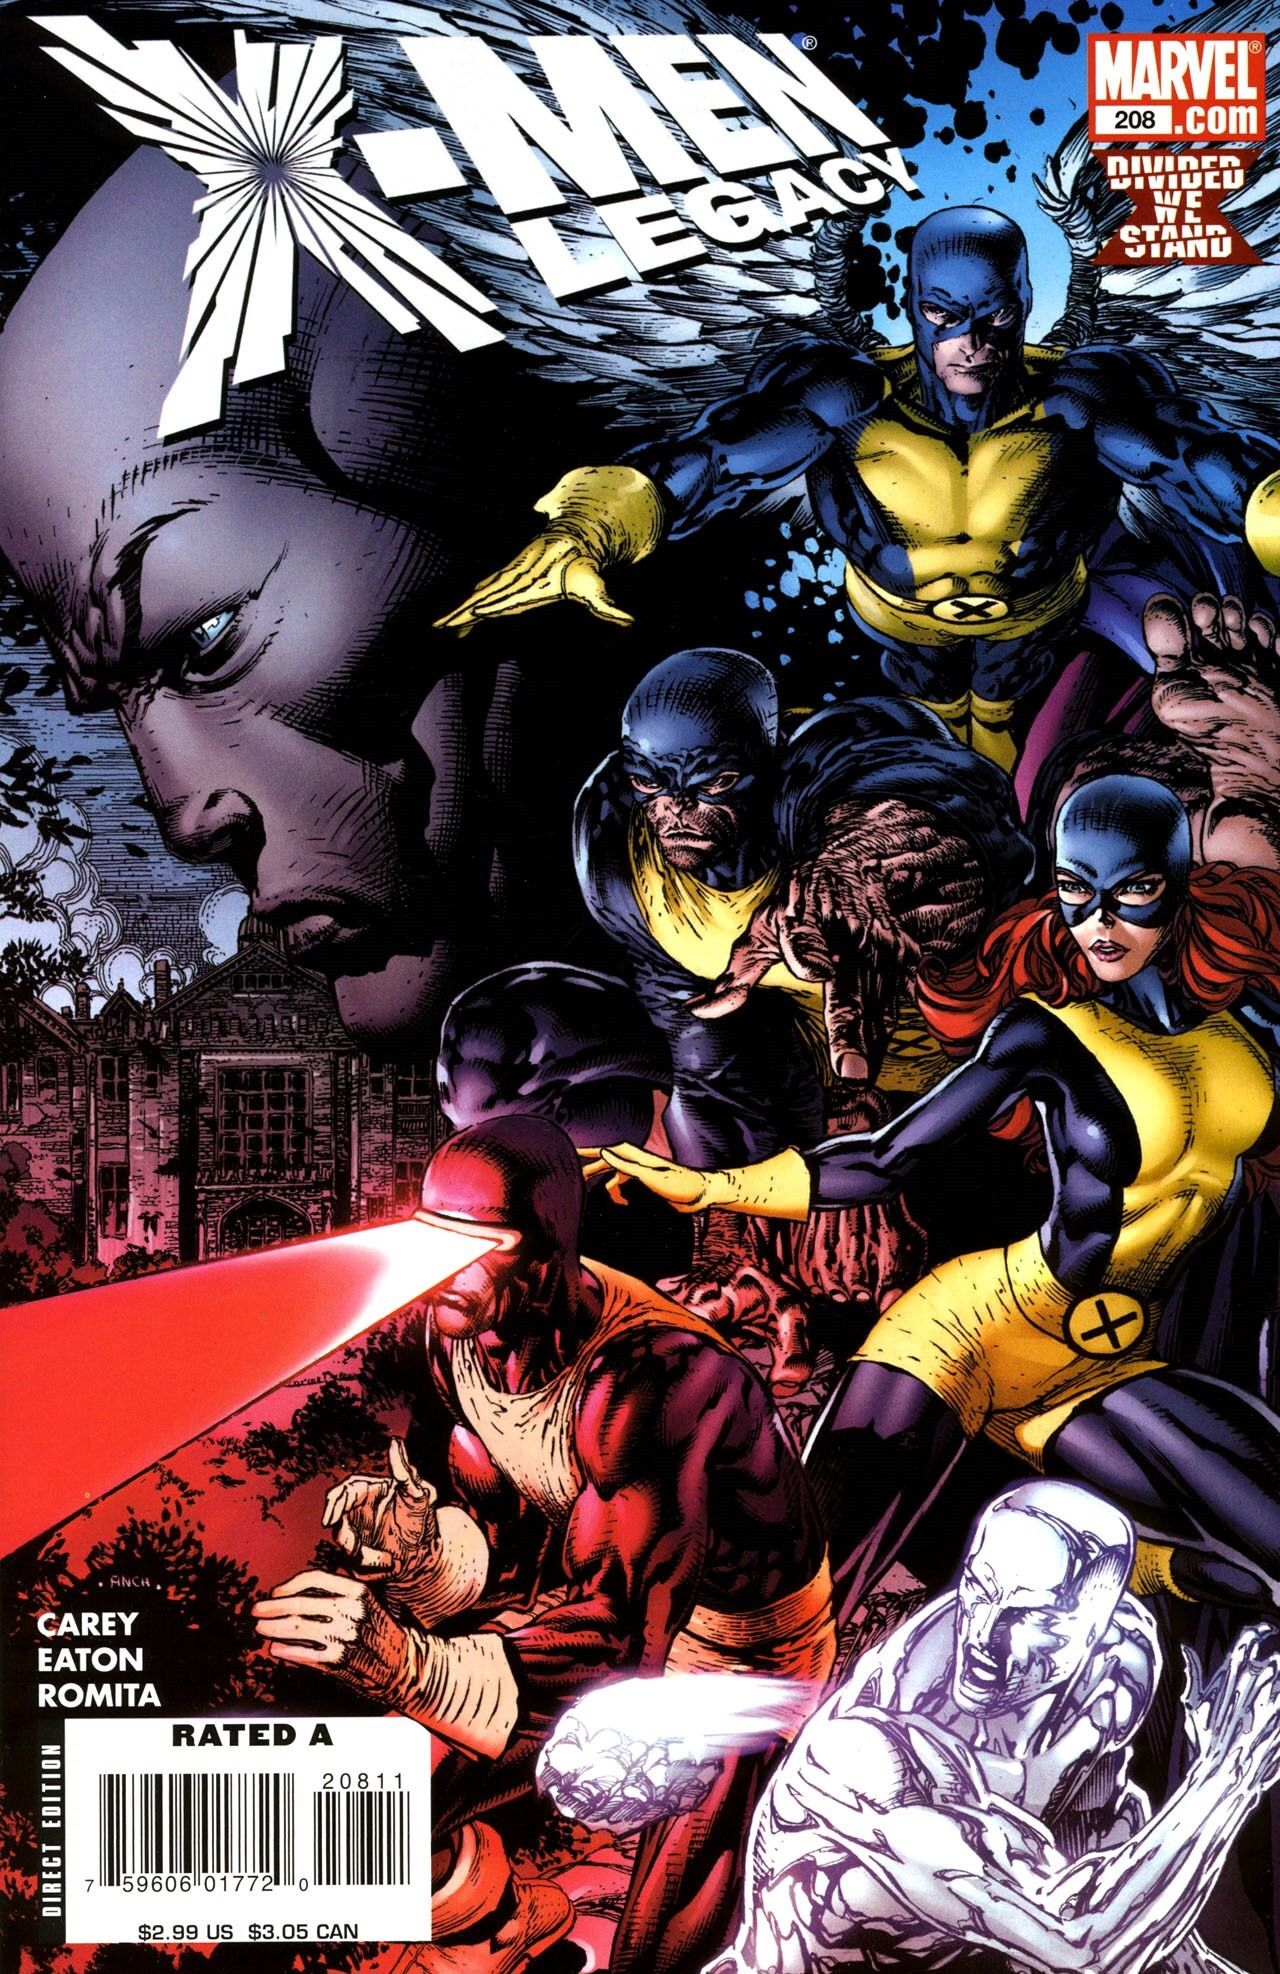 X Men Legacy Vol 1 208 Cover Art By David Finch Comics Marvel Comic Books Comic Books